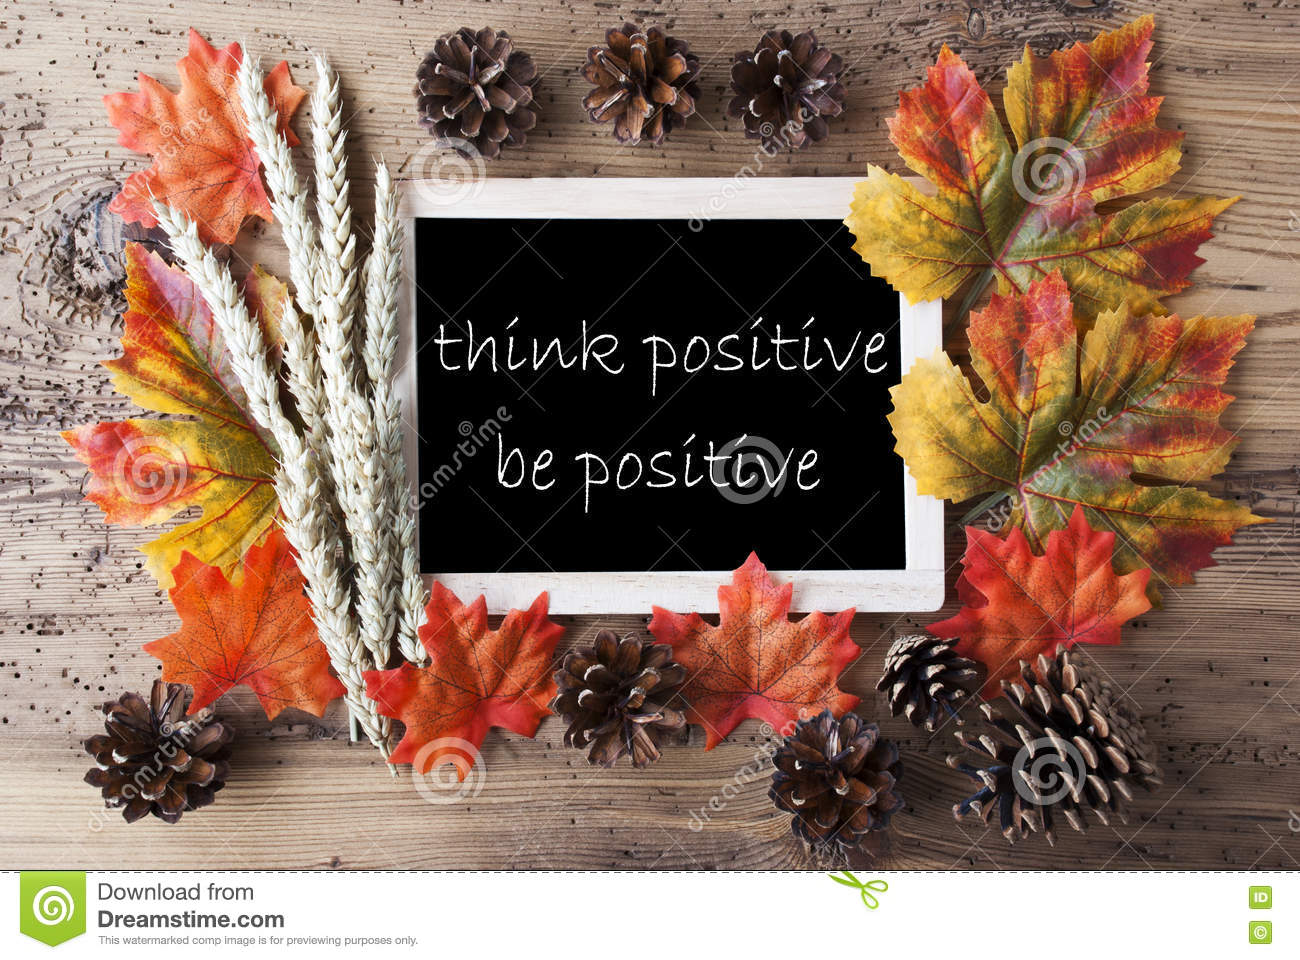 Image result for quotes for positivity with images of autumn leaves